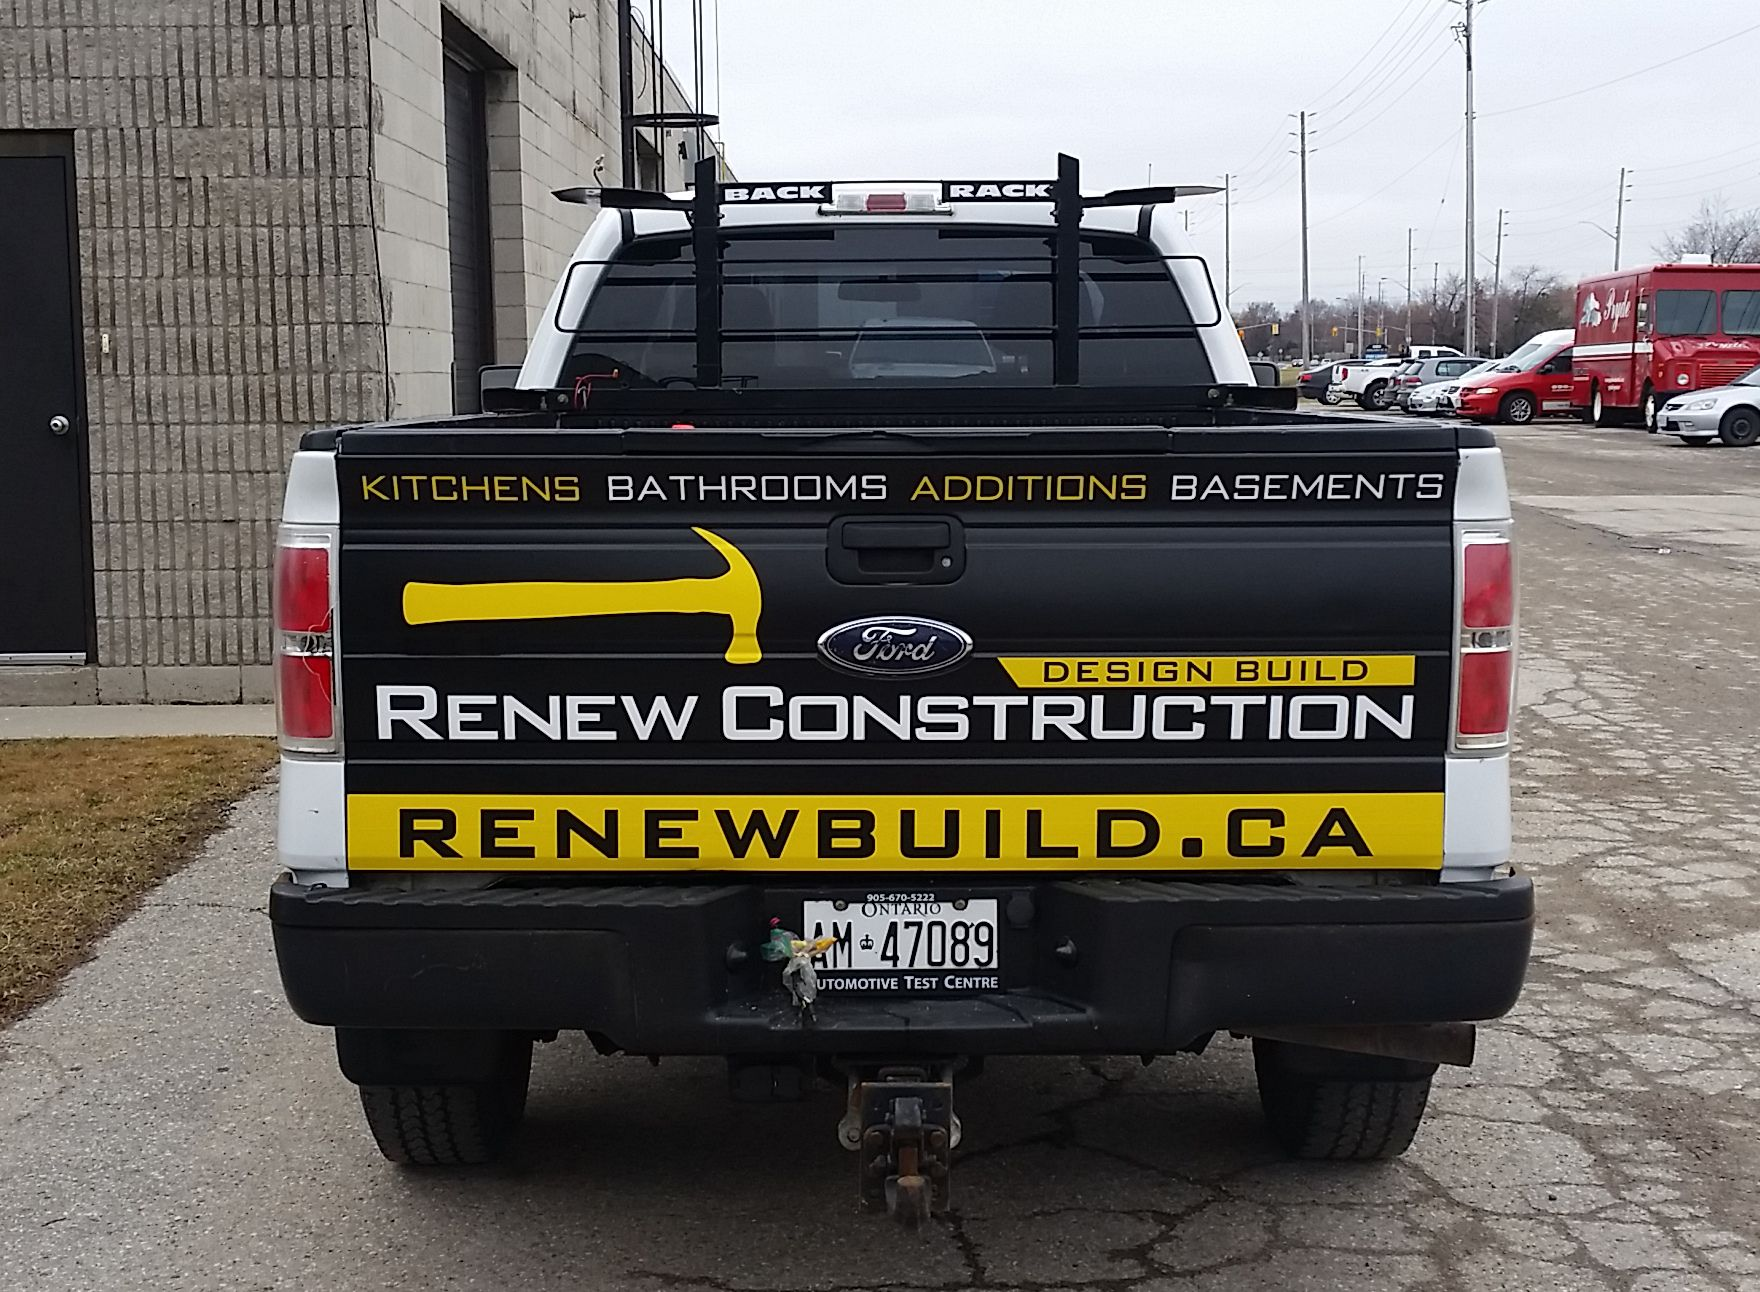 The renew construction truck is an existing client of speedpro imaging london they wrapped the constructionletteringvehicle